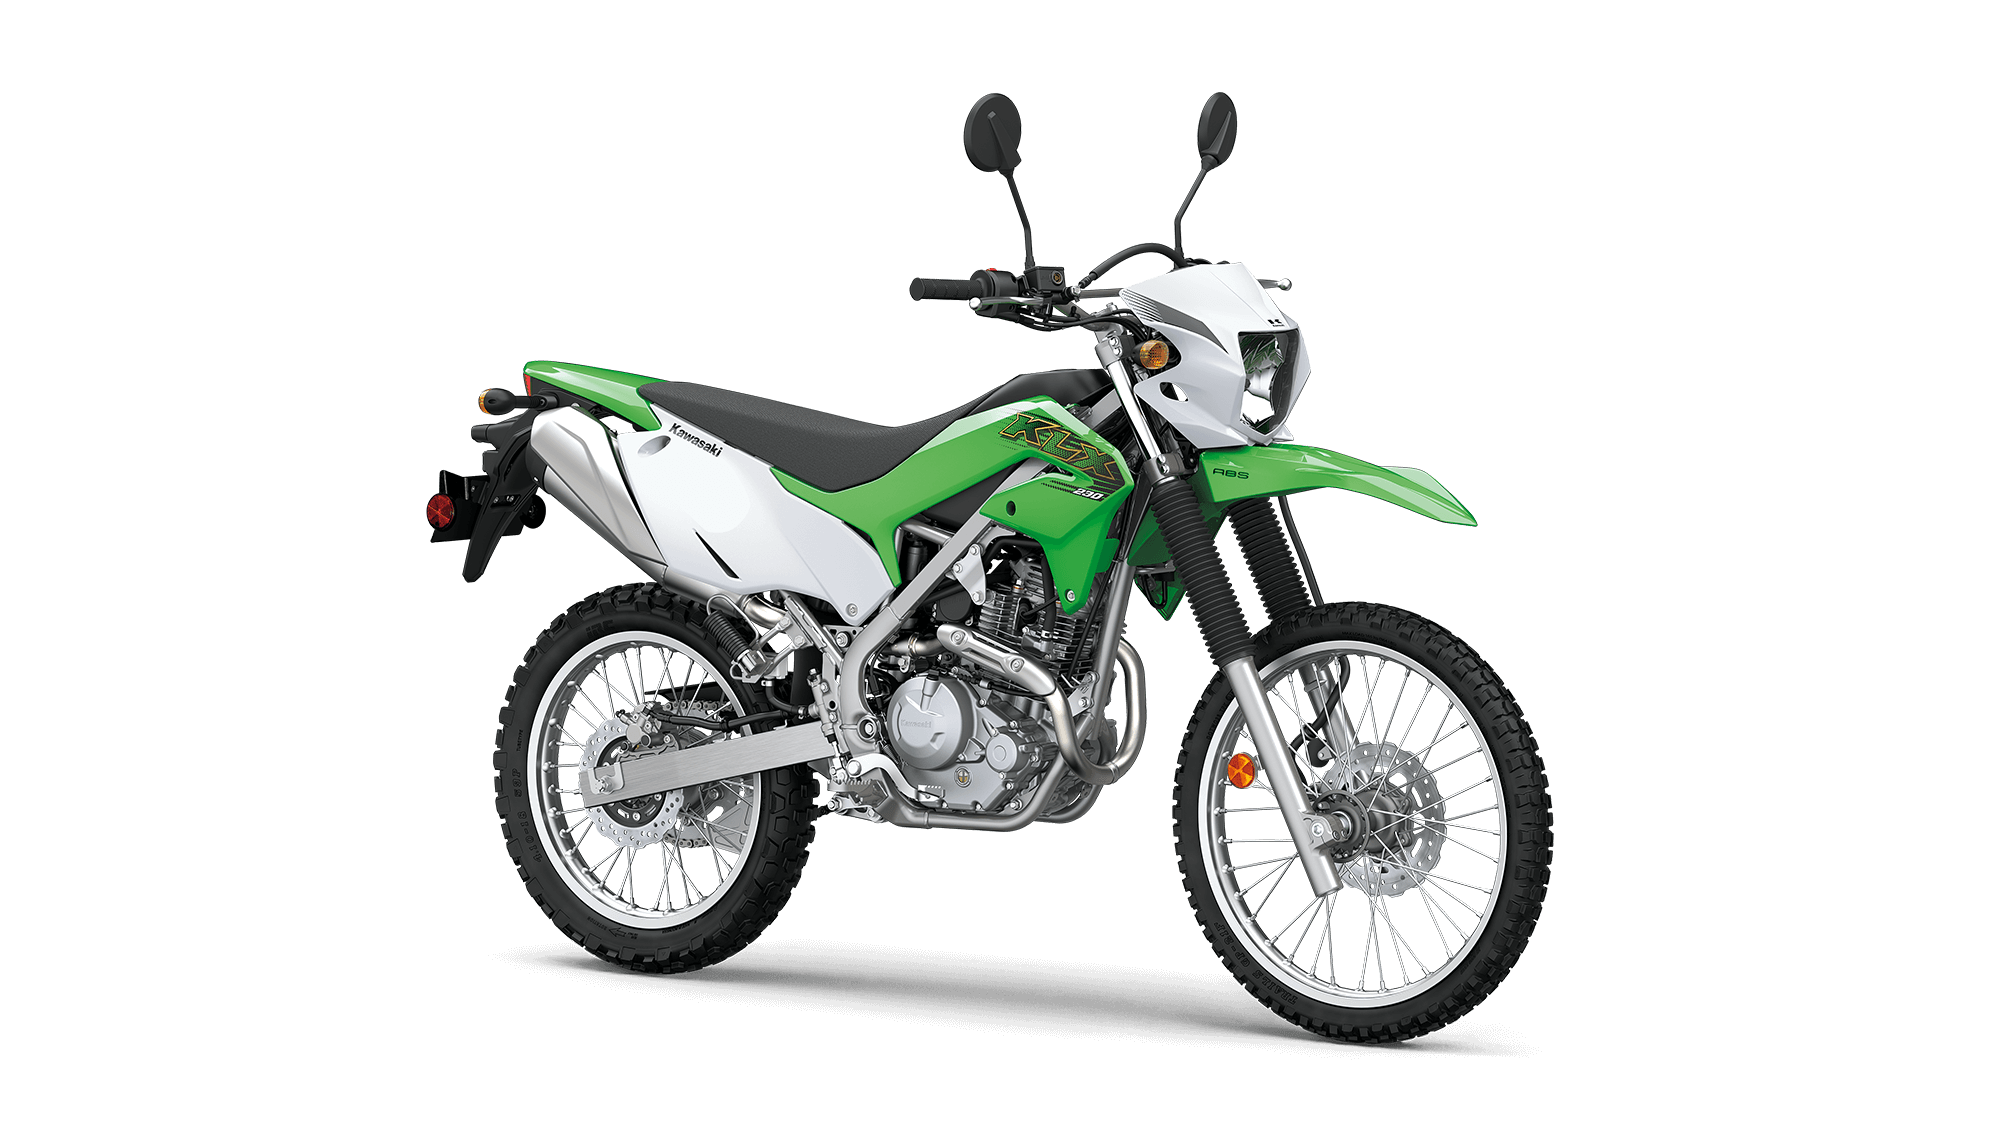 Klx 230 Abs Klr Klx Motorcycle By Kawasaki